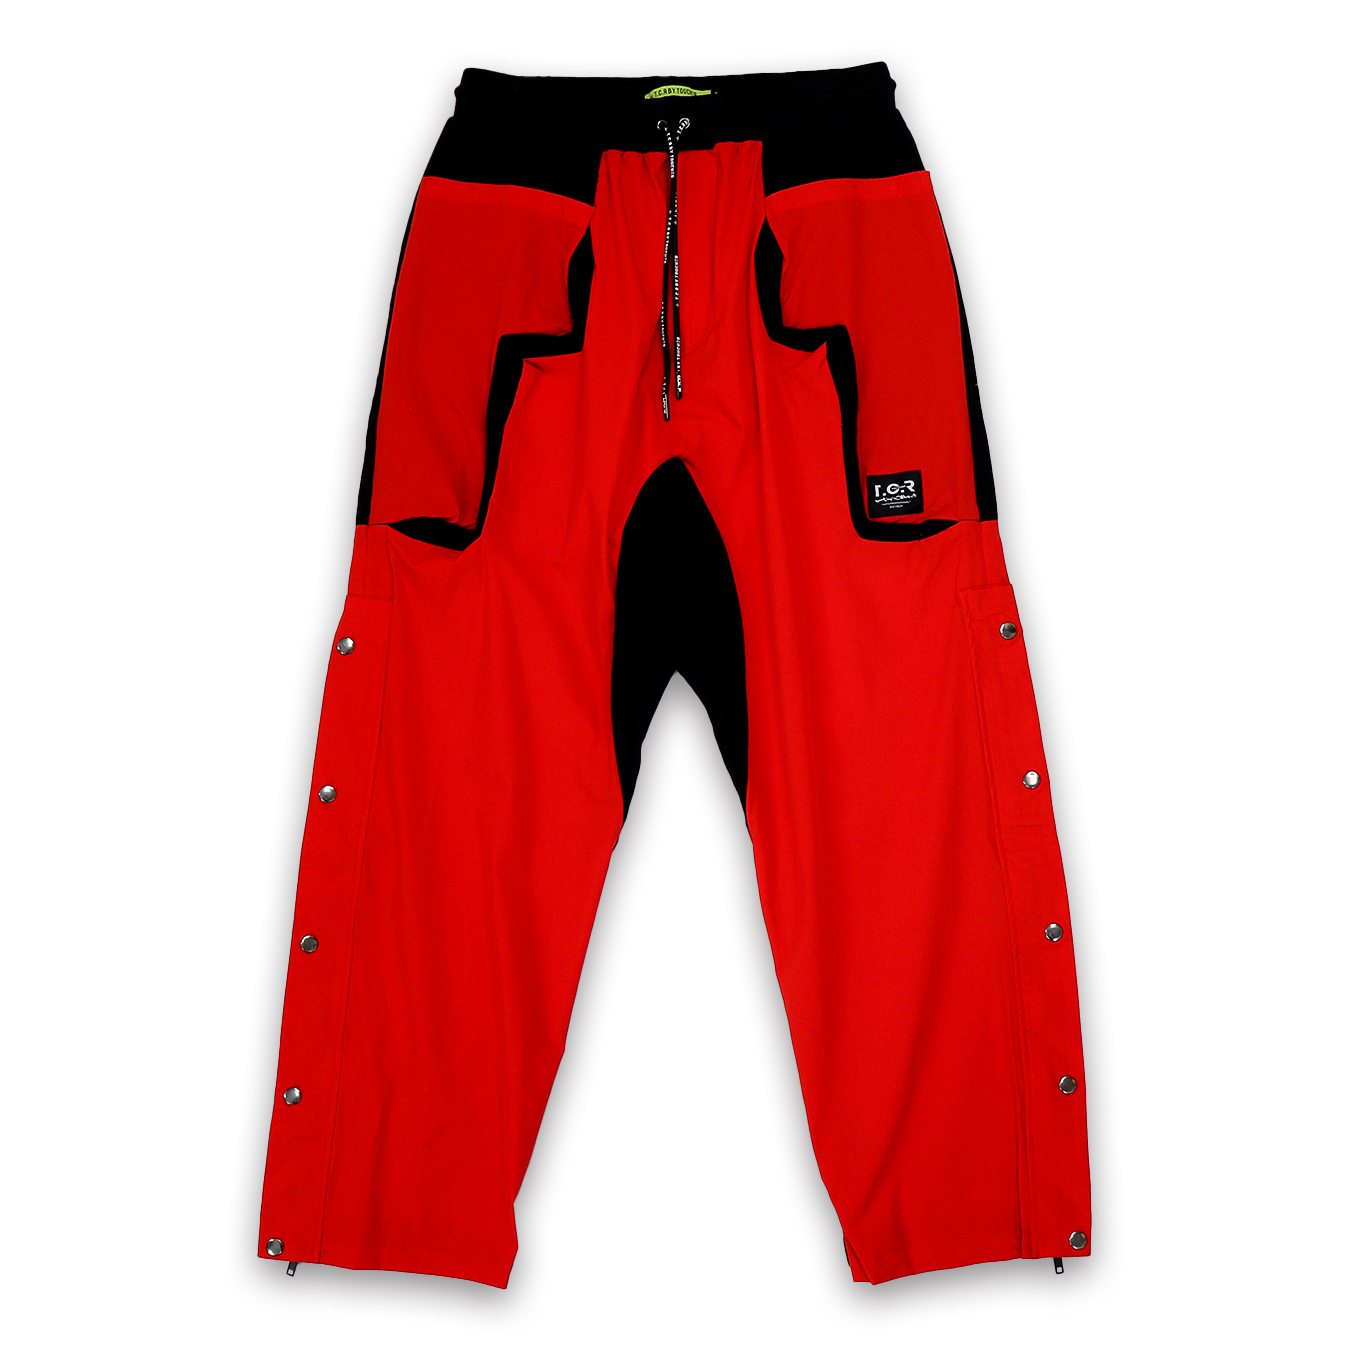 T.C.R EQUIPMENT SHELL PANTS V2 - RED/BLACK